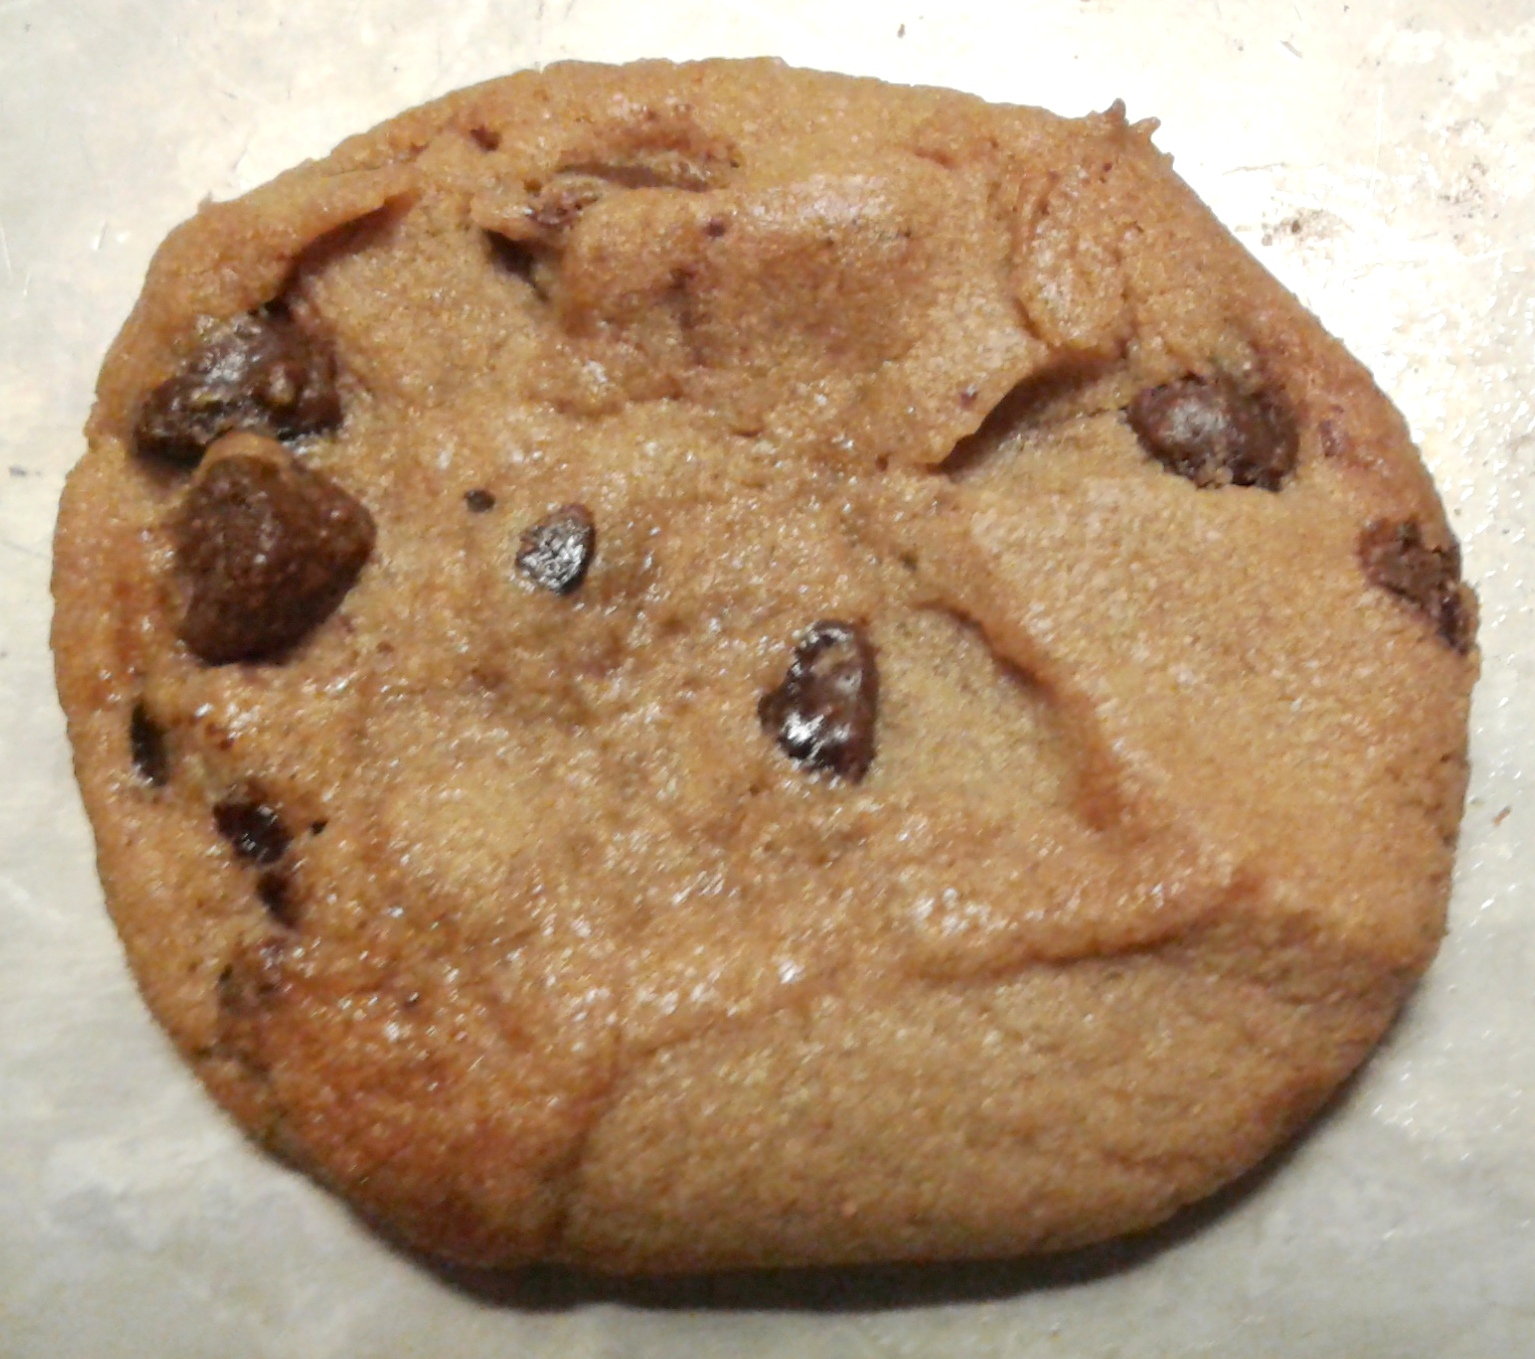 My Ancestors and Me: A Memory for National Chocolate Chip Cookie Day